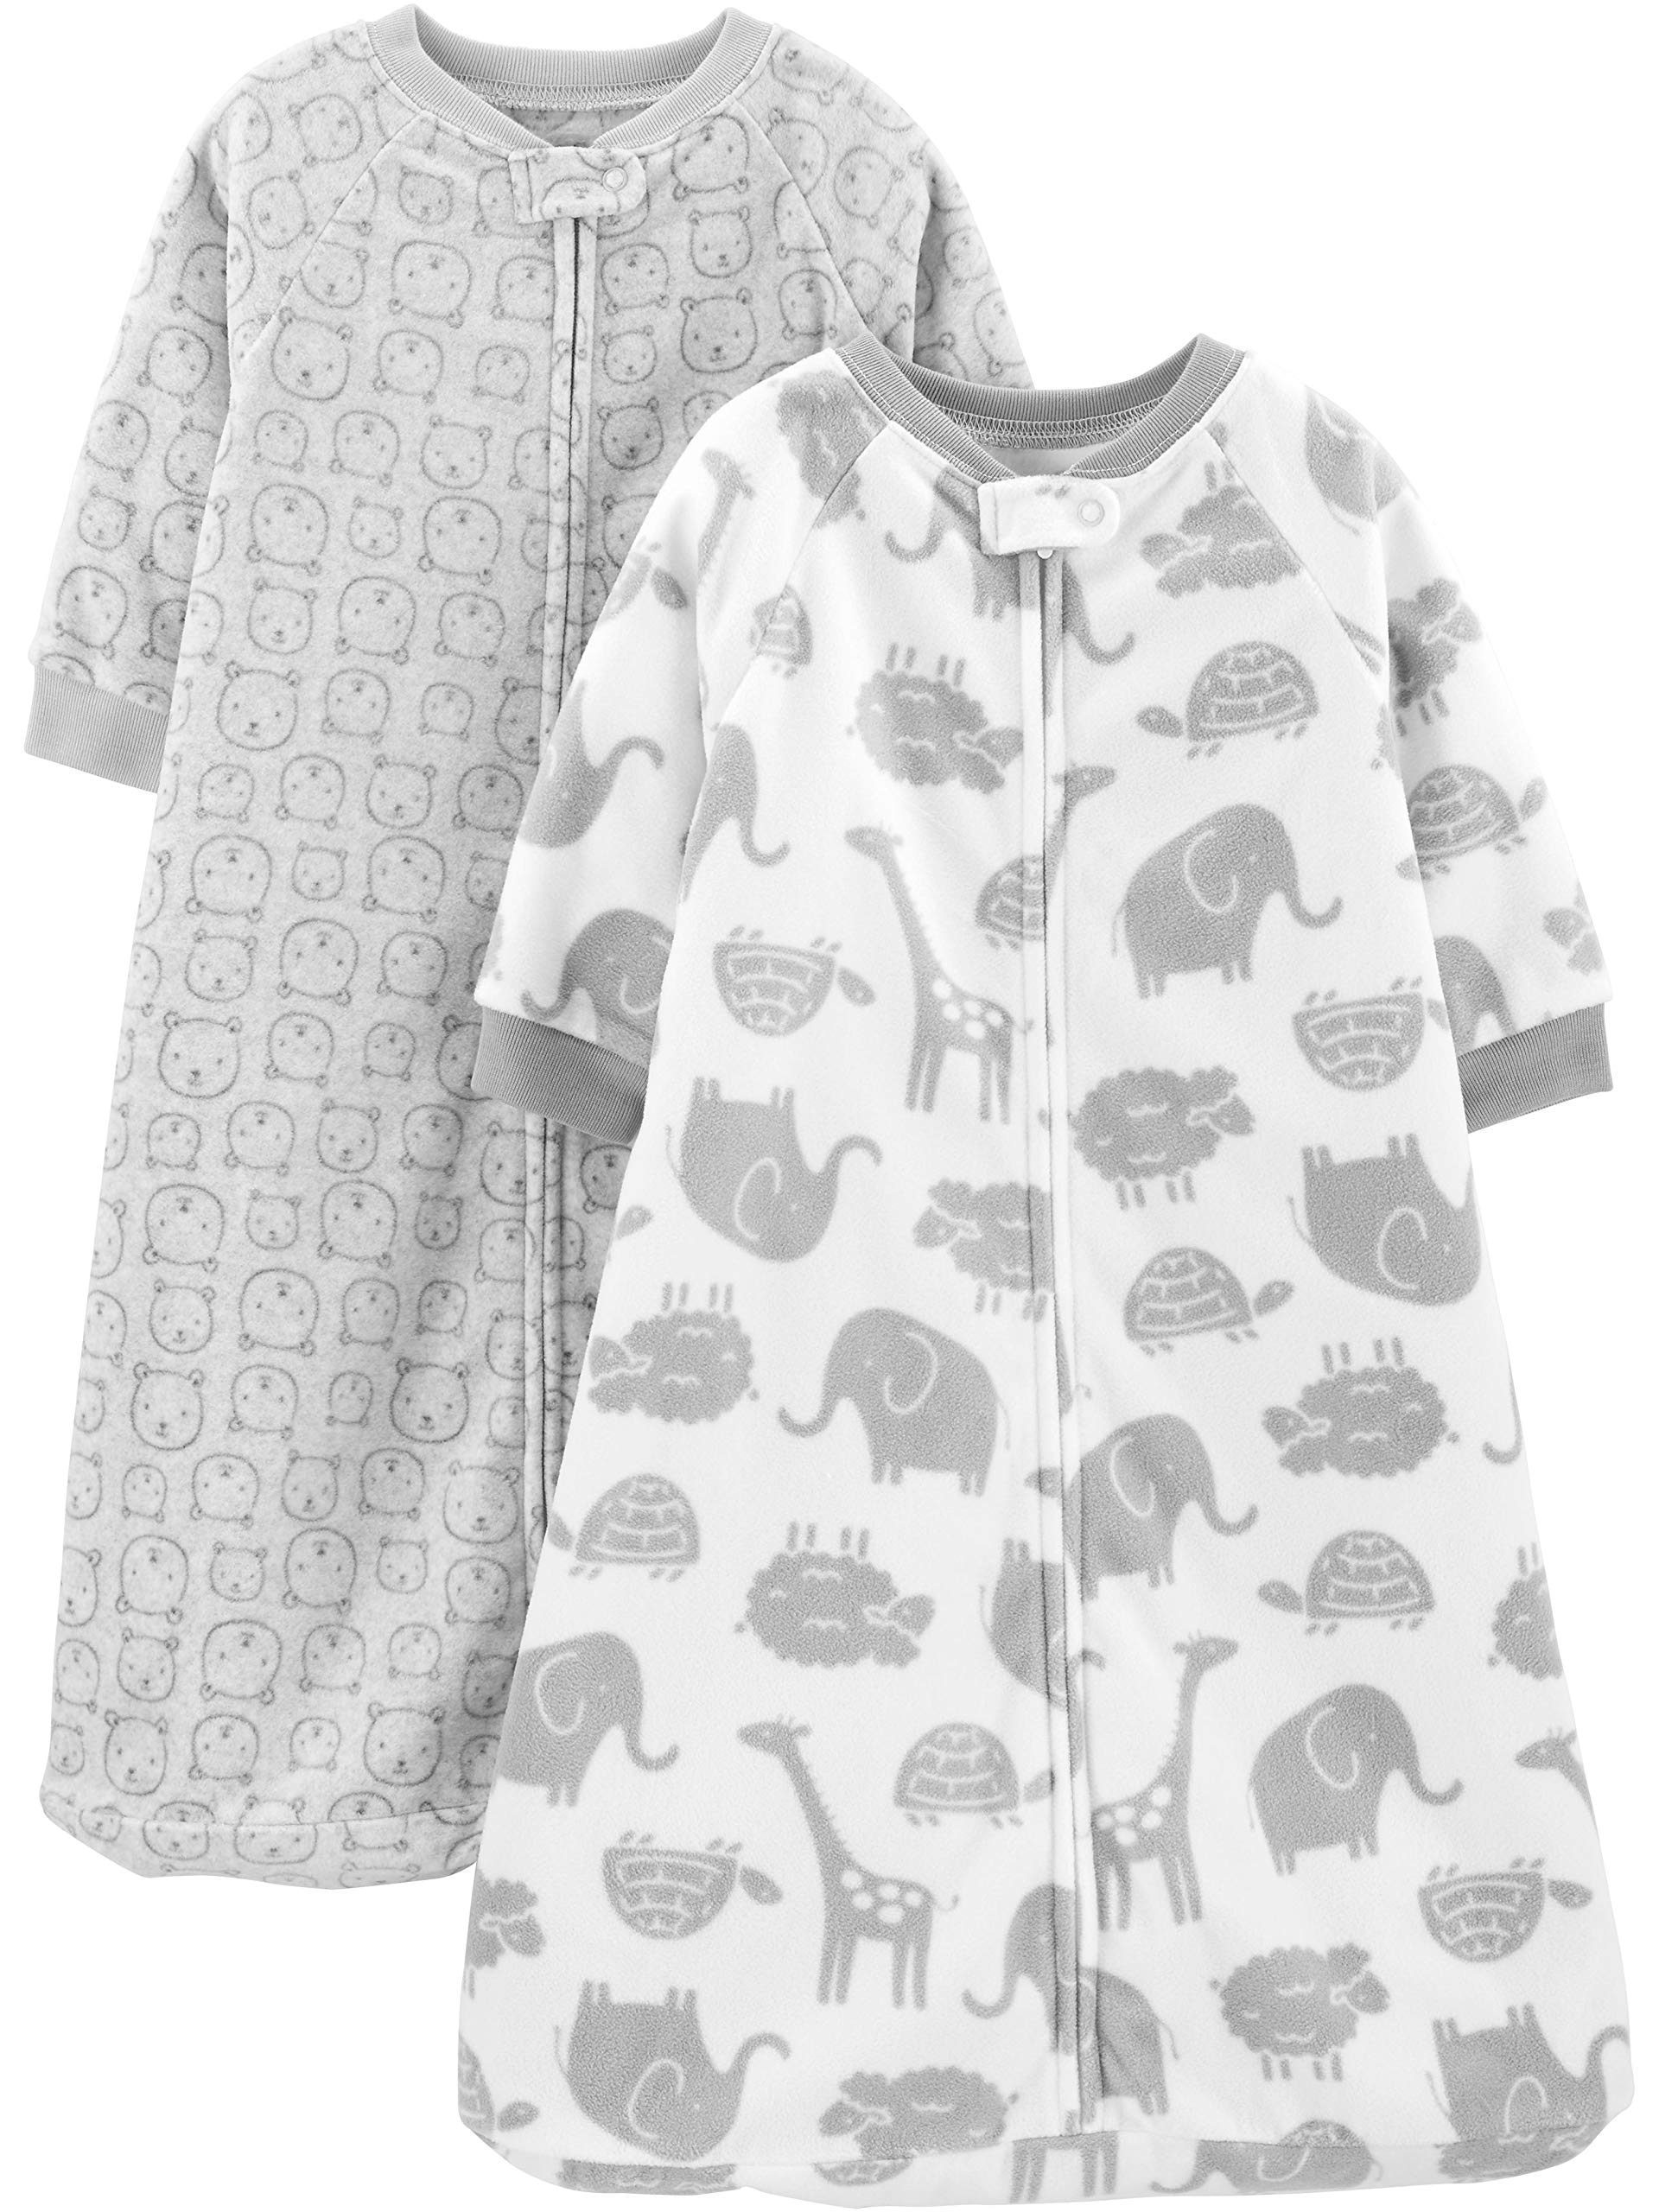 Simple Joys by Carter's Baby 2-Pack Microfleece or 3-Pack Cotton Sleepbag, Heather Grey Animals, Medium: 6-9 Months, 12.5-21 lbs by Simple Joys by Carter's